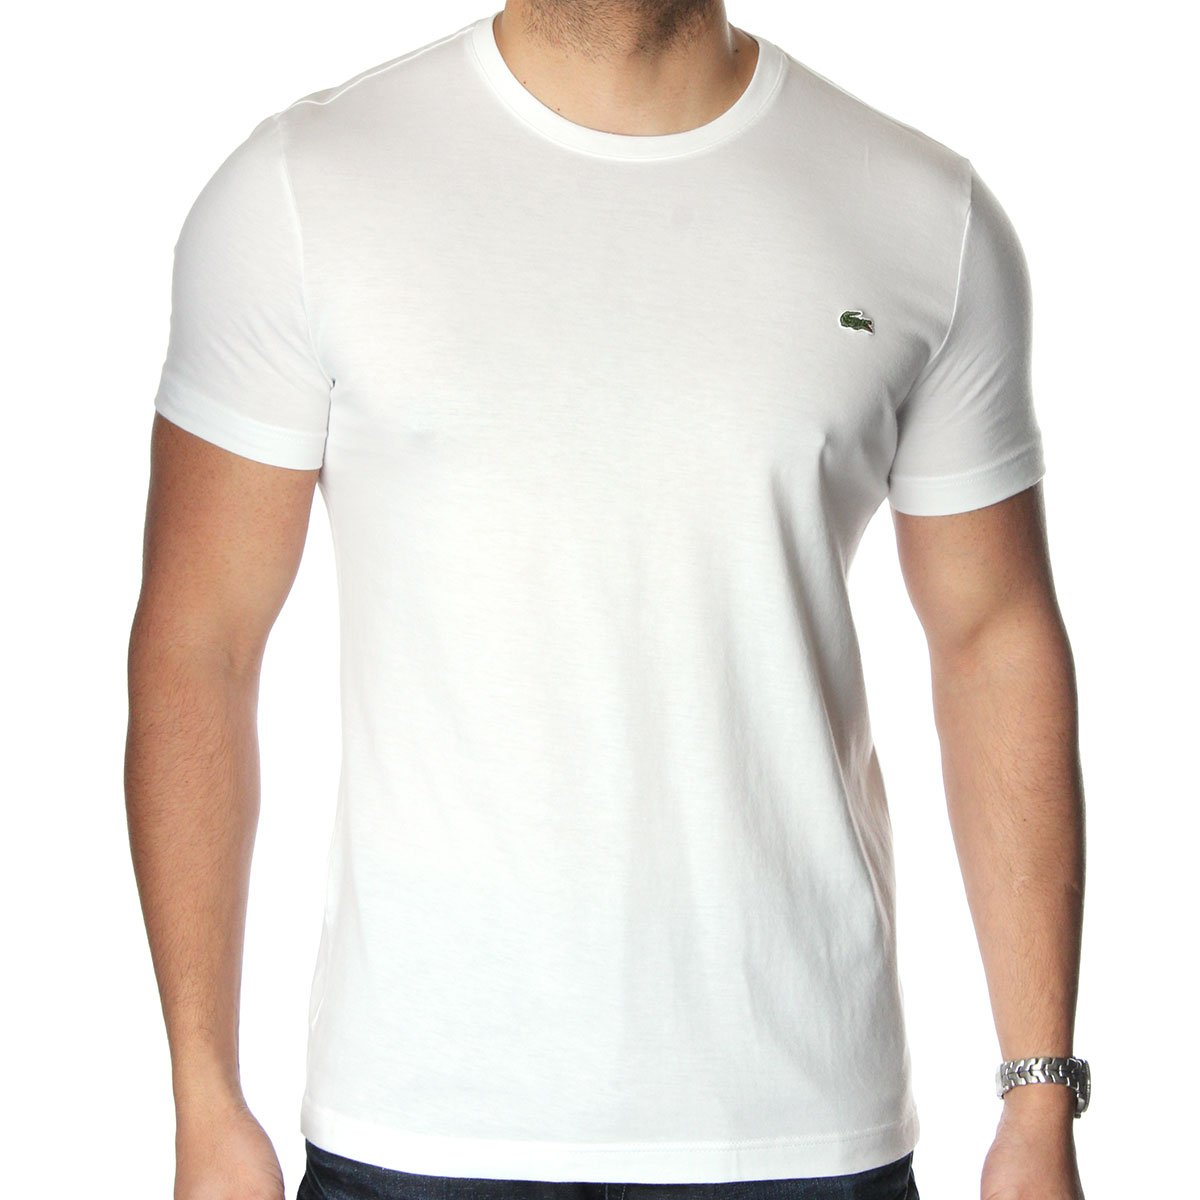 white round neck lacoste t shirt. Black Bedroom Furniture Sets. Home Design Ideas